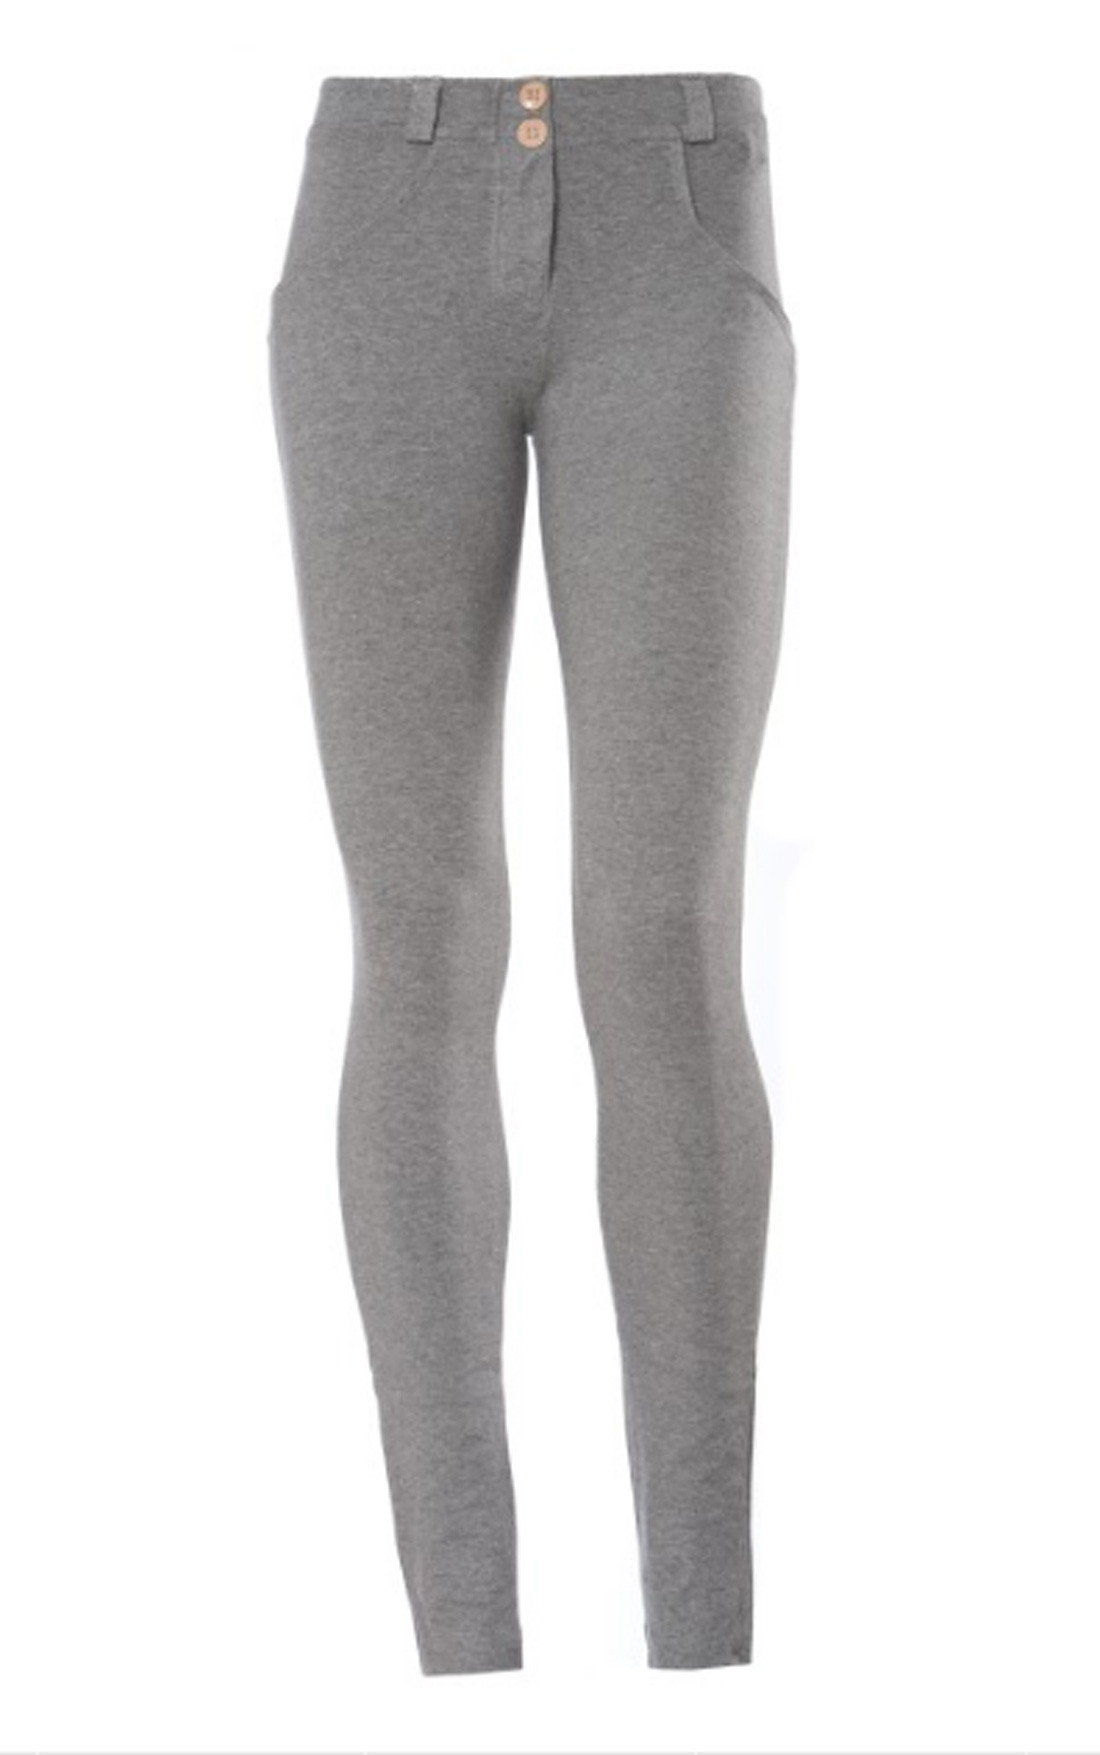 Freddy - Wr.Up® Shaping Effect Mid Waist Skinny Jeggings Grey (WRUP1R1E_H40)